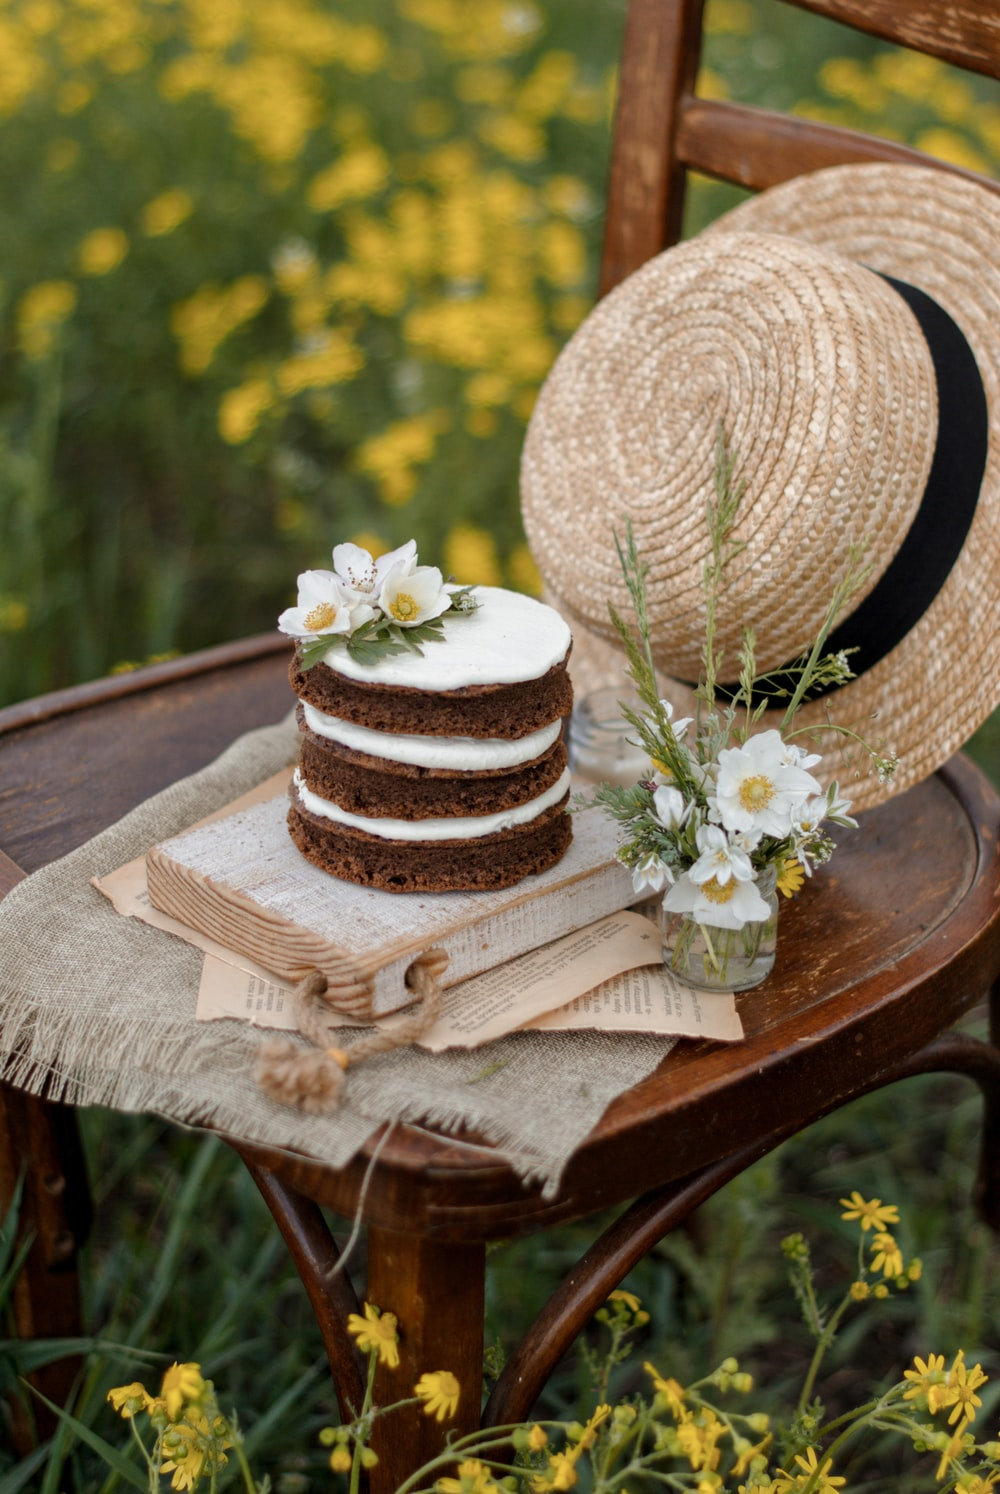 white and brown round hat on brown wooden table